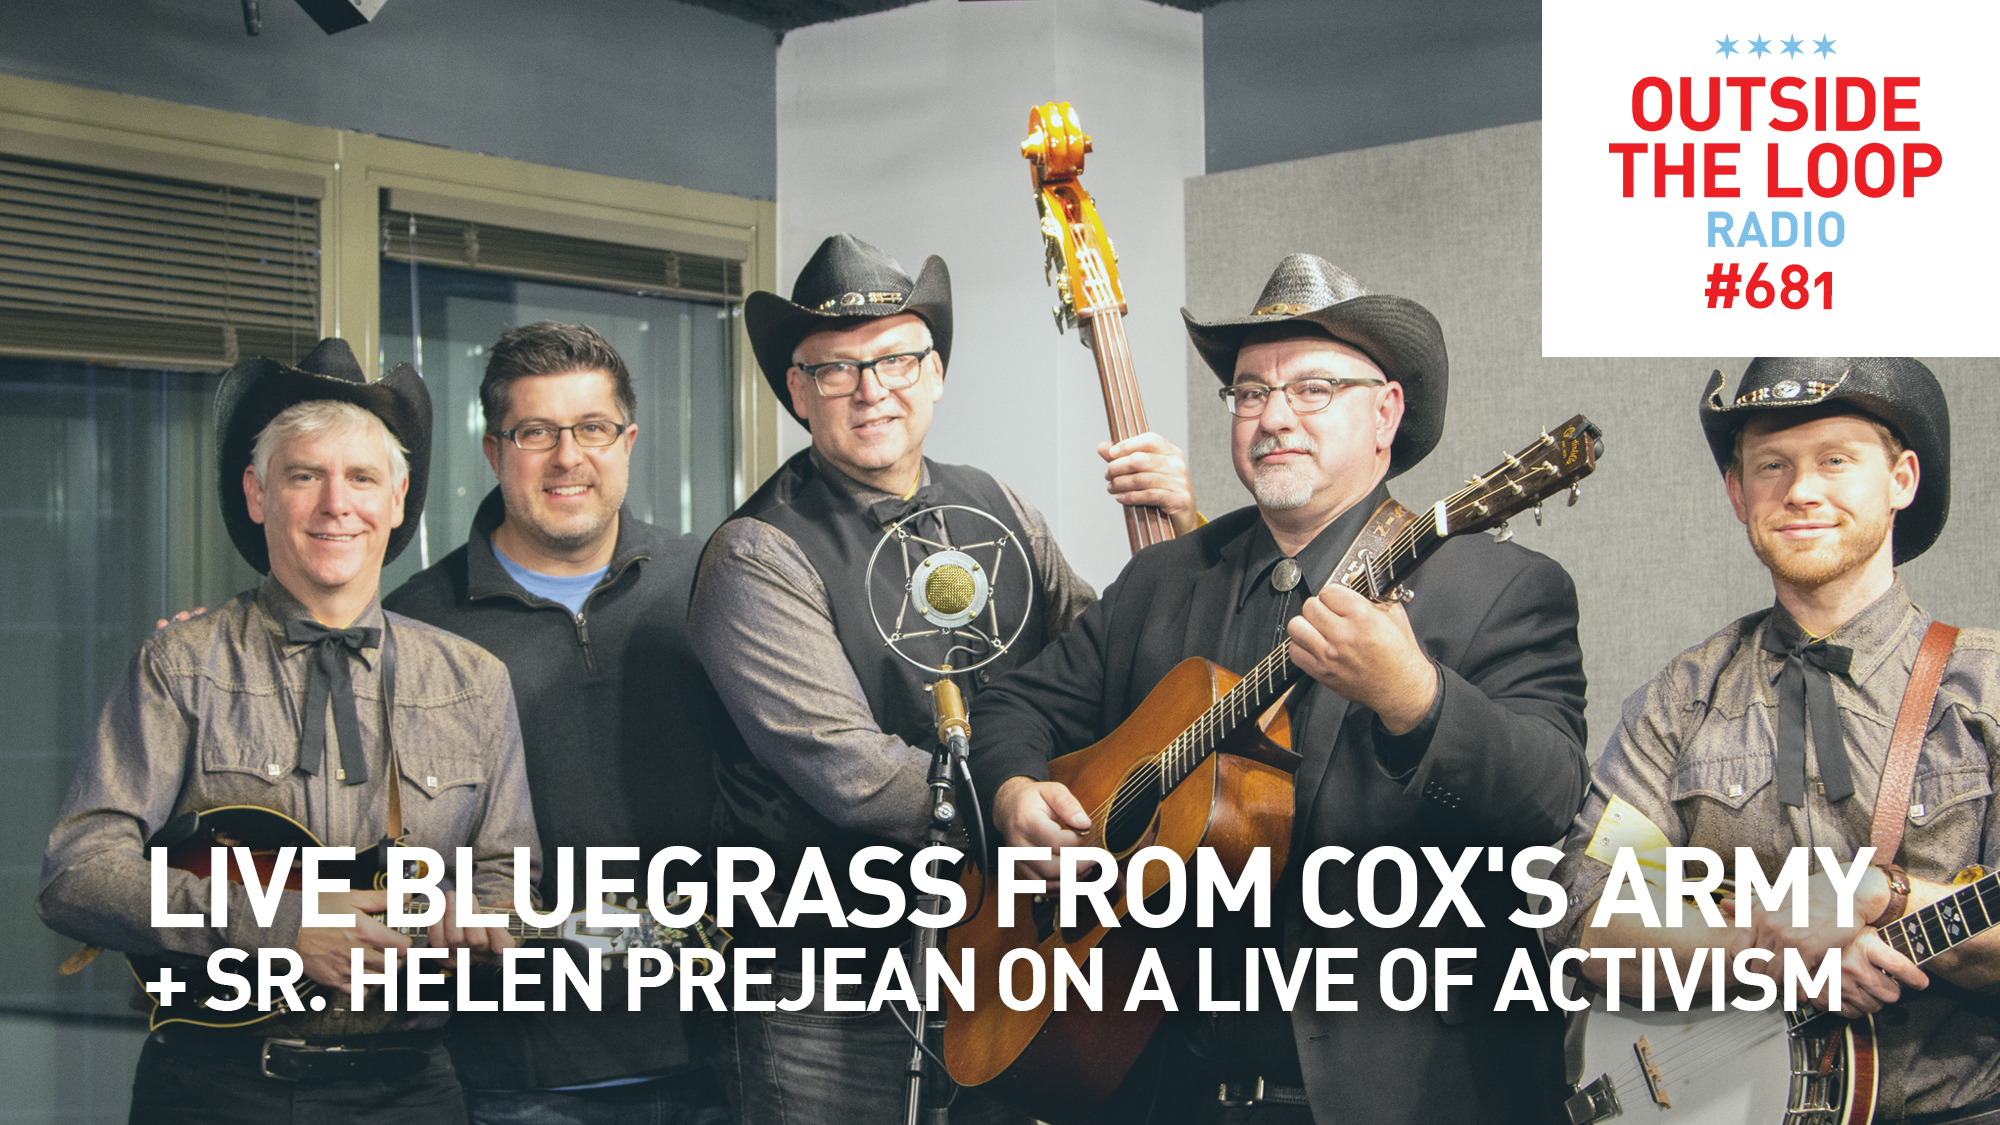 Mike Stephen with Cox's Army in the WGN Radio Performance Studio.